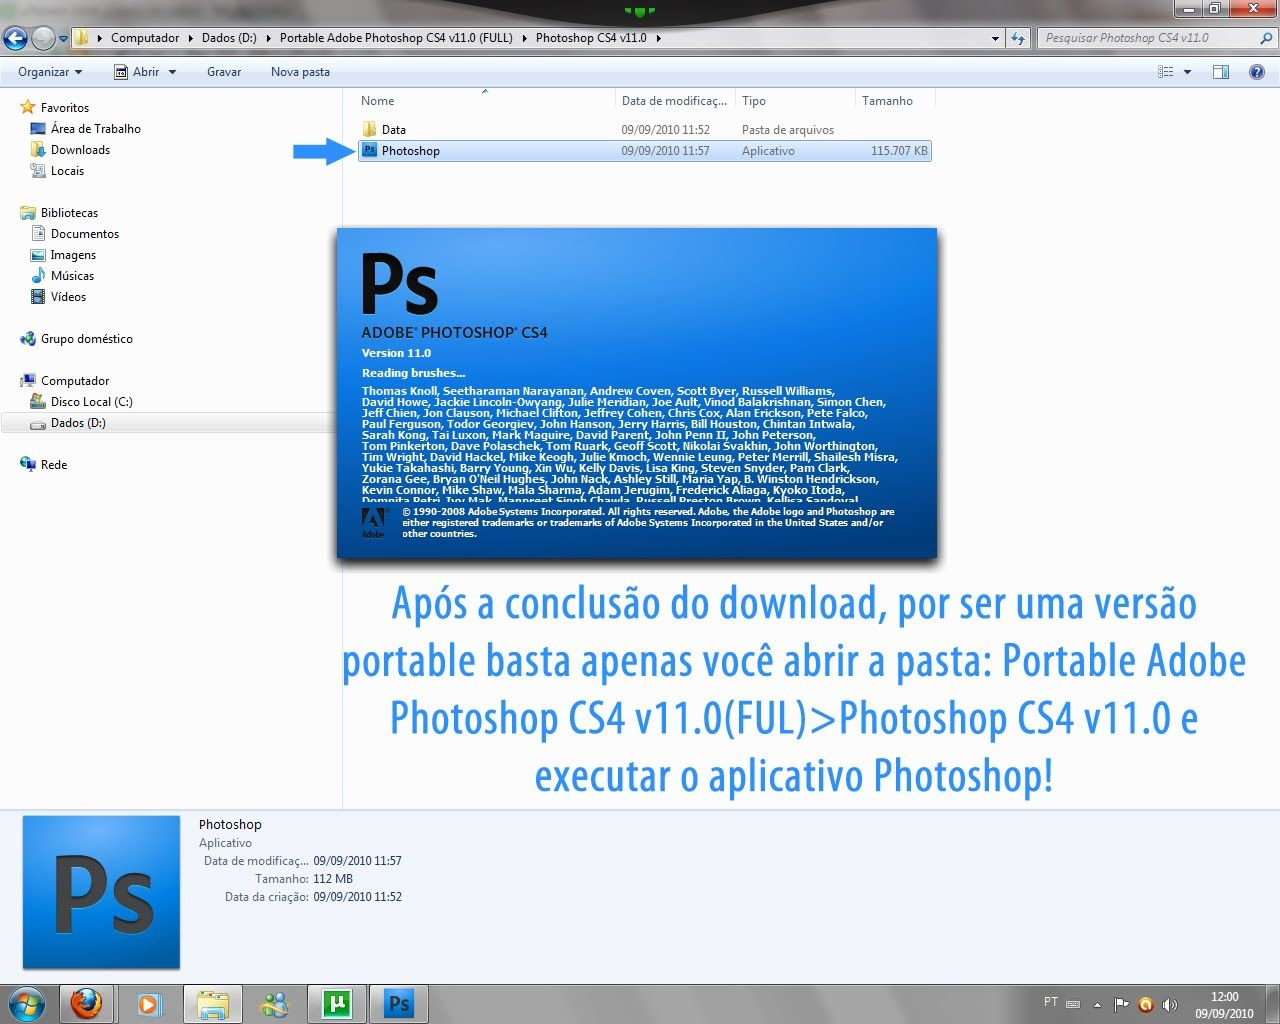 Portable Photoshop Free Portable Photoshop Cs4 Installer Quicriman Pinterest